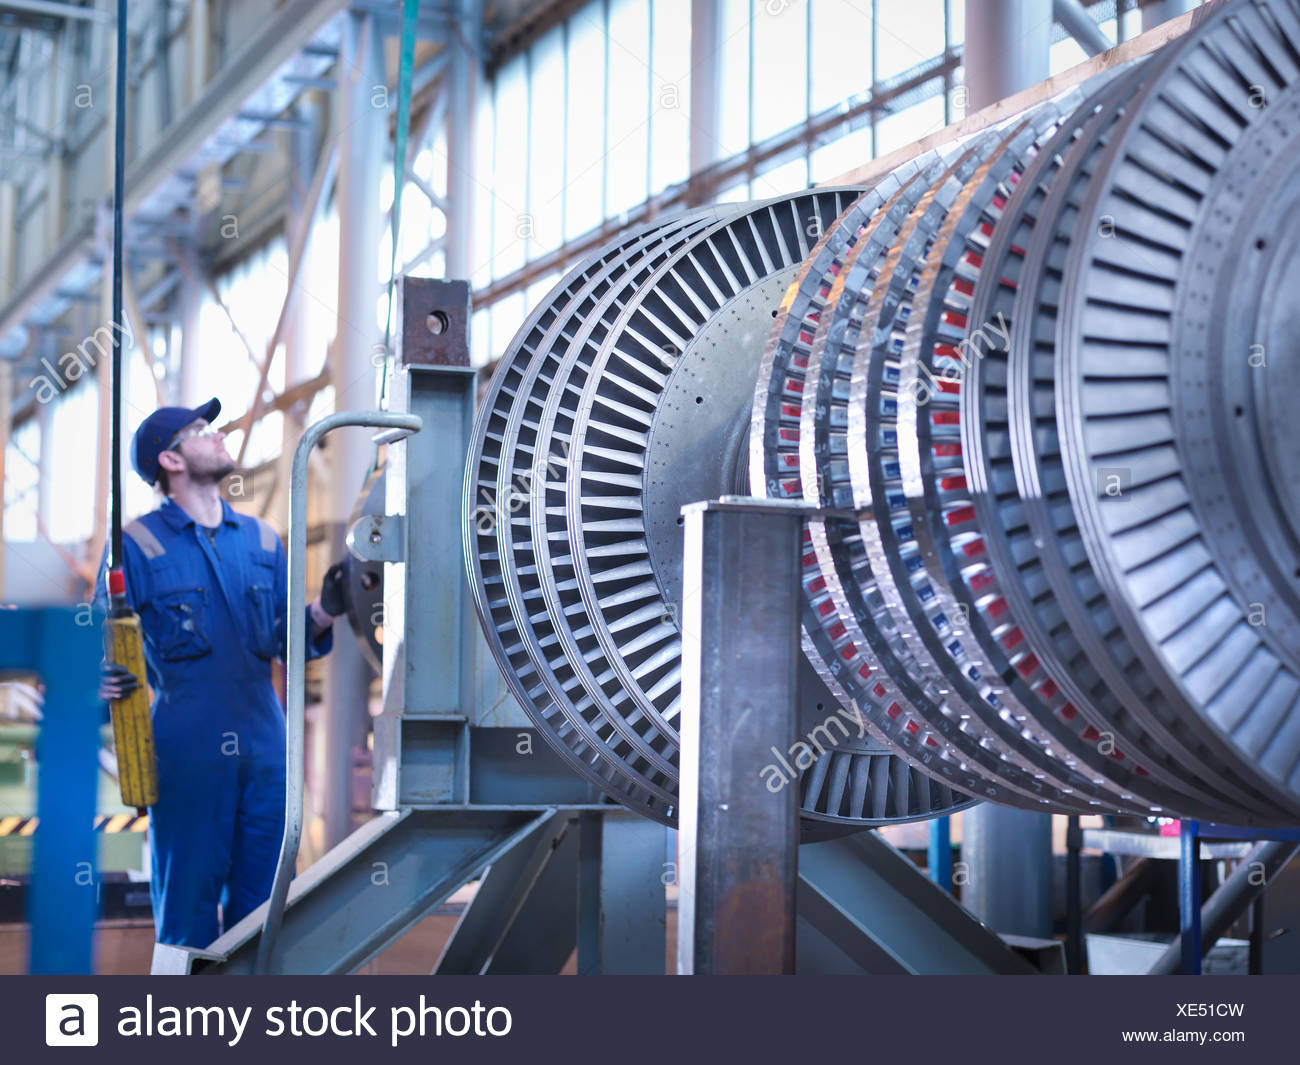 Engineer lifting high pressure steam turbine with crane in workshop - Stock Image